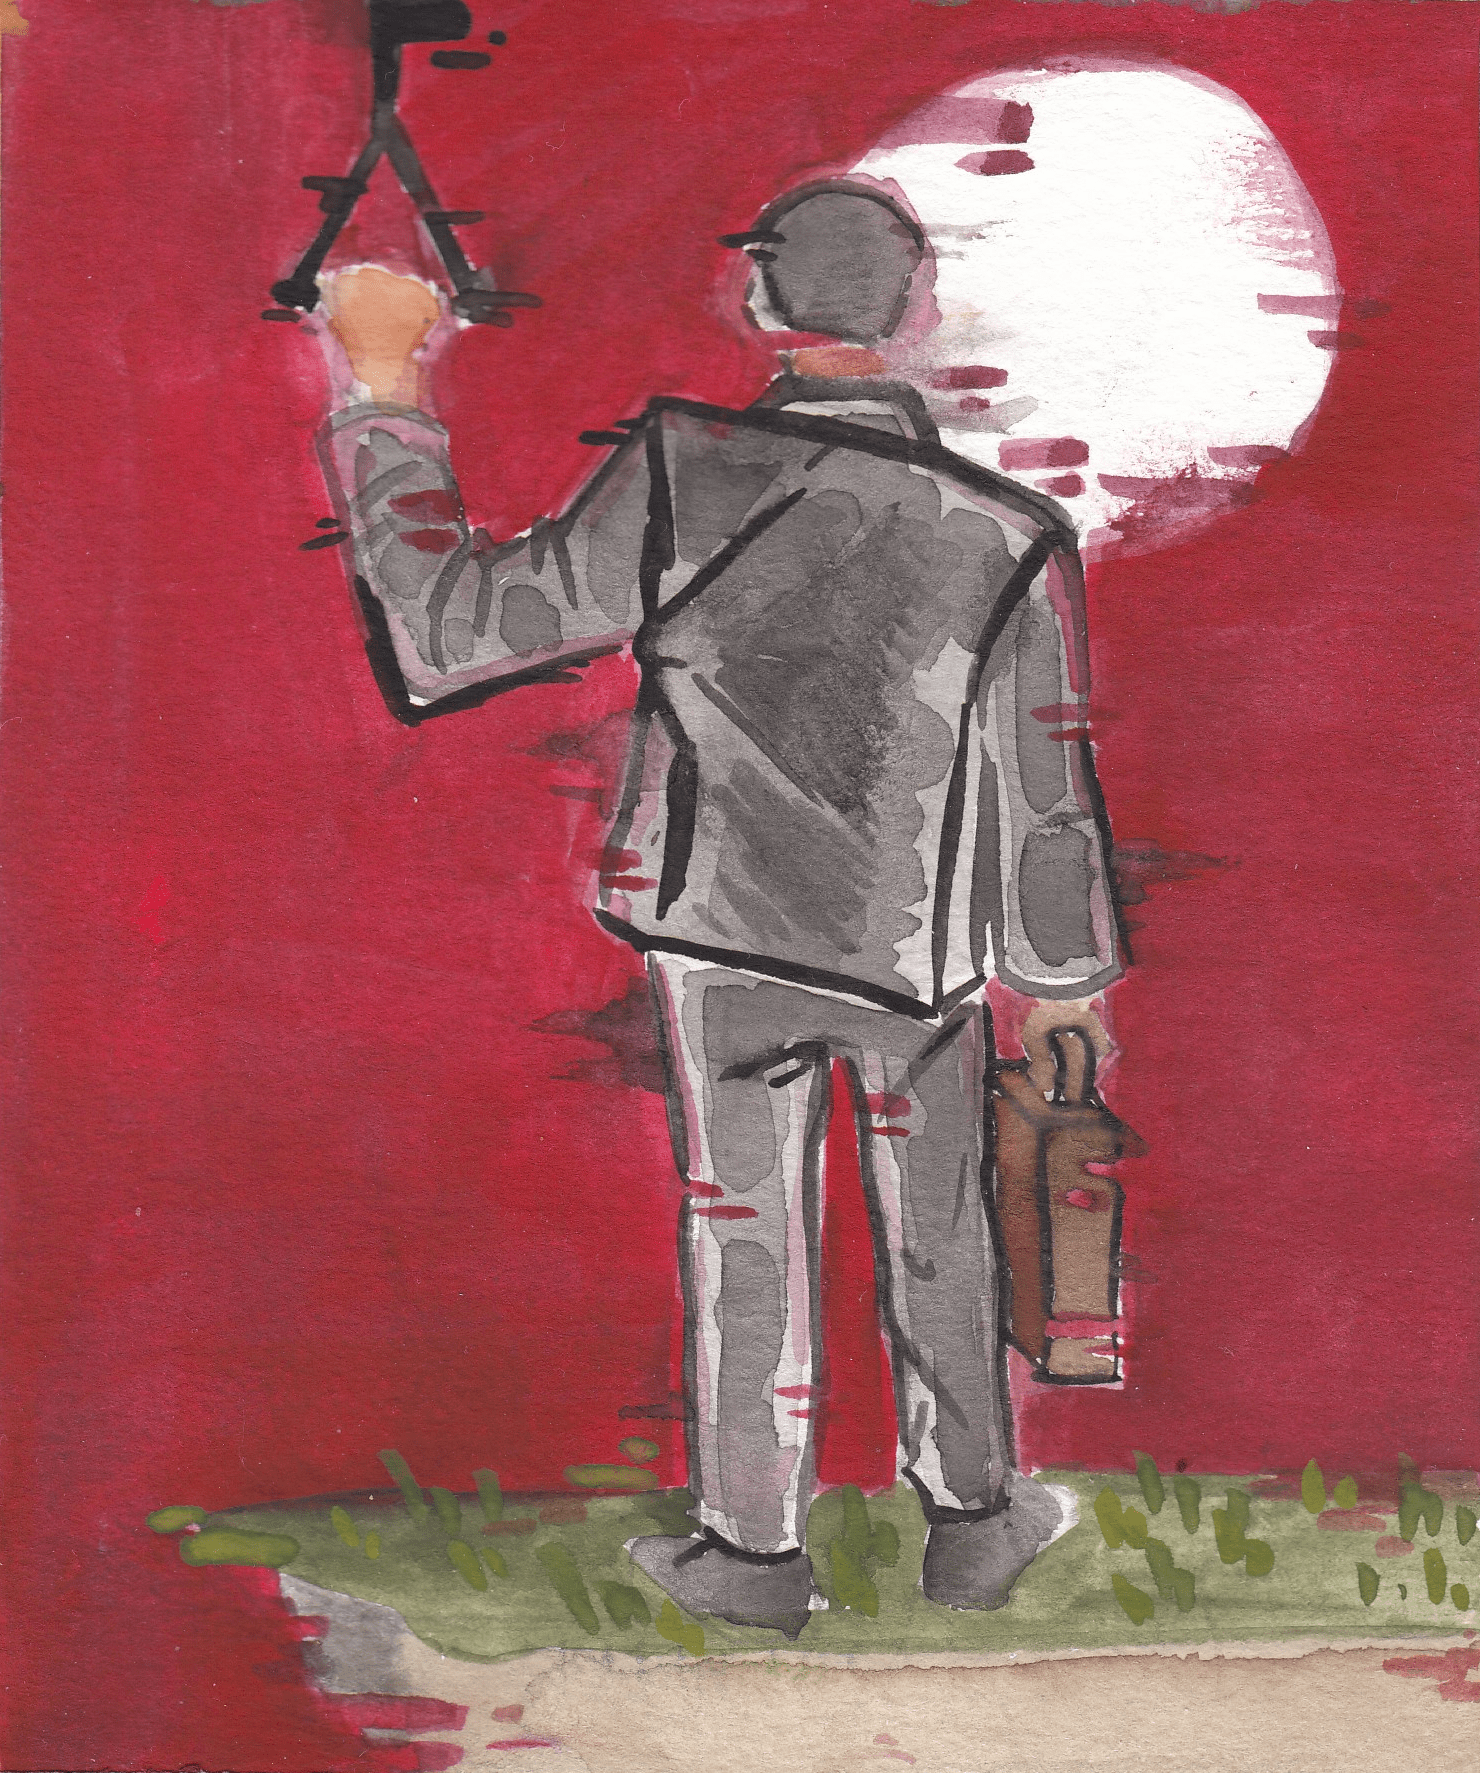 Red background with a back view of a man